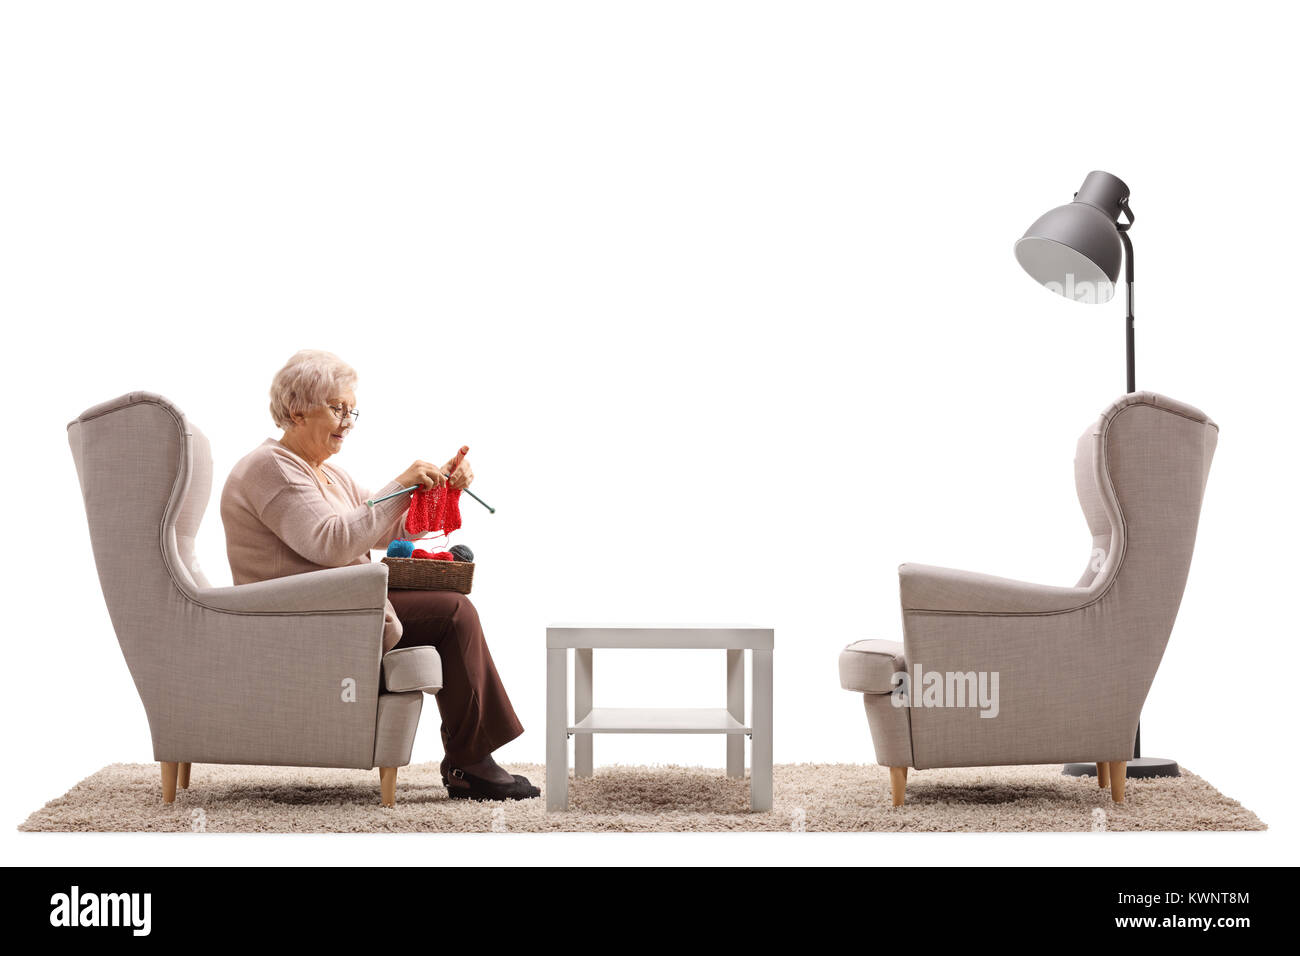 Sitzen Im Sessel Woman Sitting In Chair Knitting Stockfotos And Woman Sitting